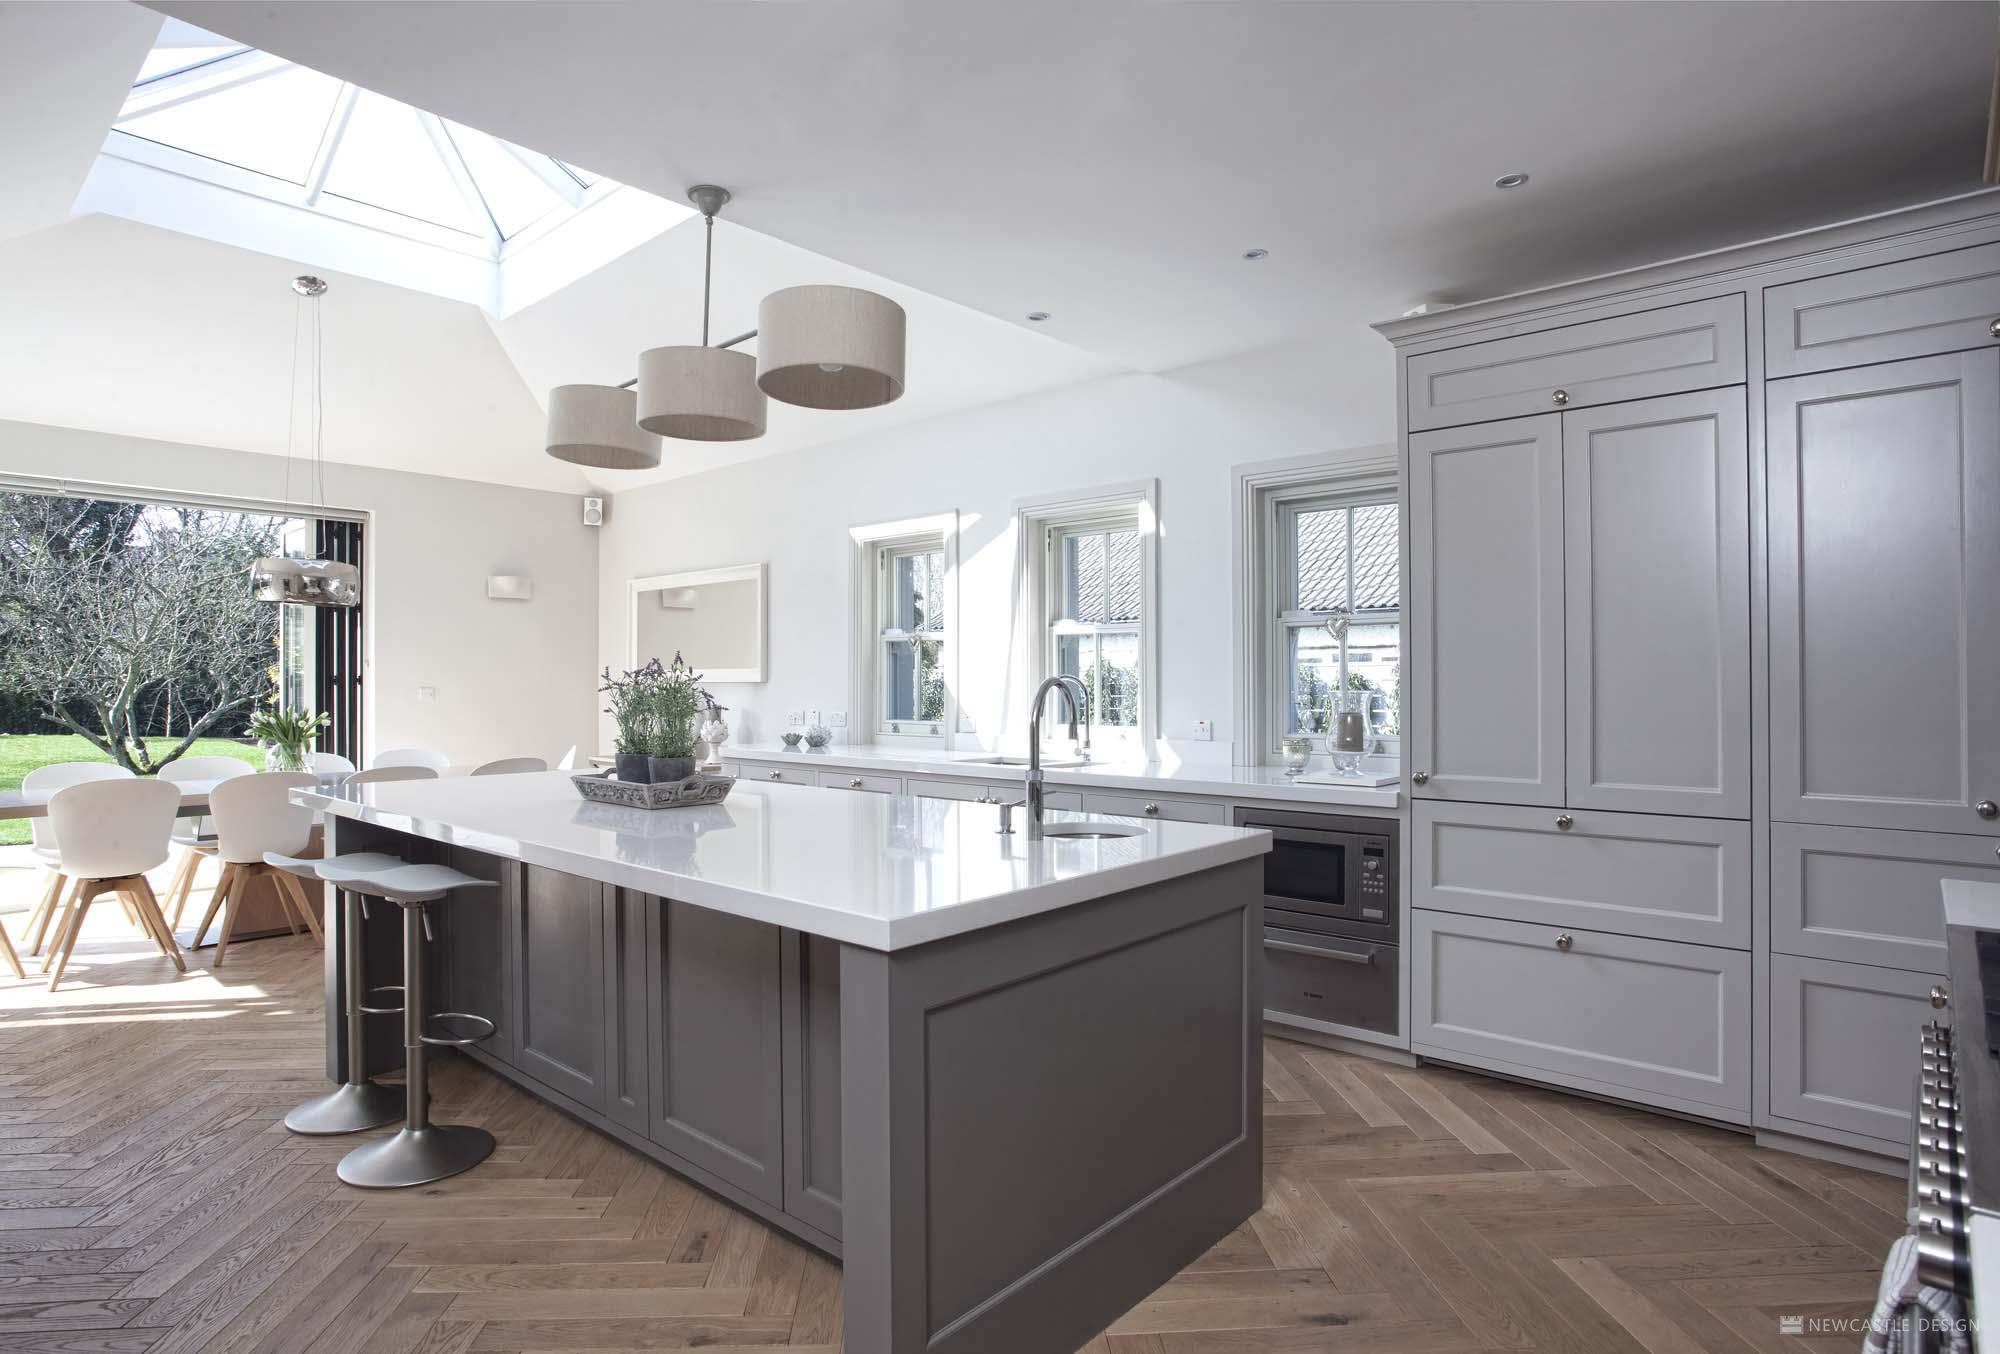 Home Interiors Design Ideas Newcastle Design Ireland Kitchen Company Dublin